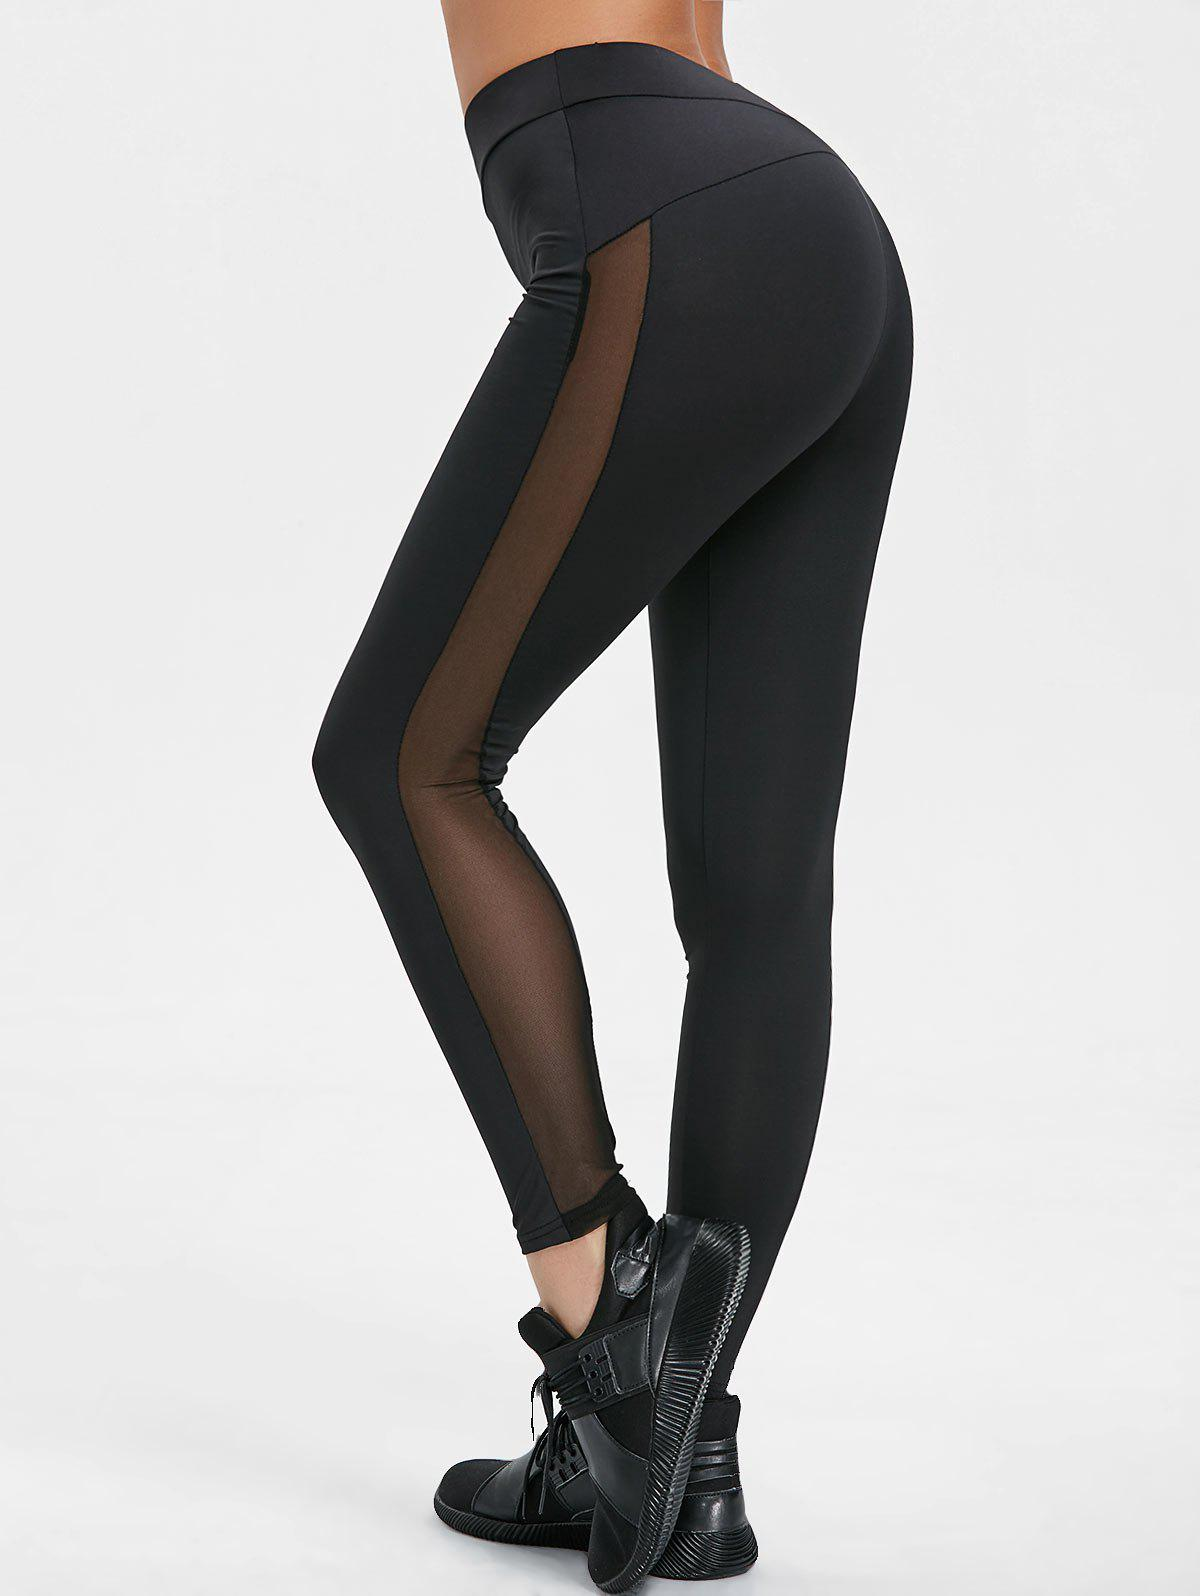 High Waisted Sheer Mesh Insert Yoga Pants - BLACK S